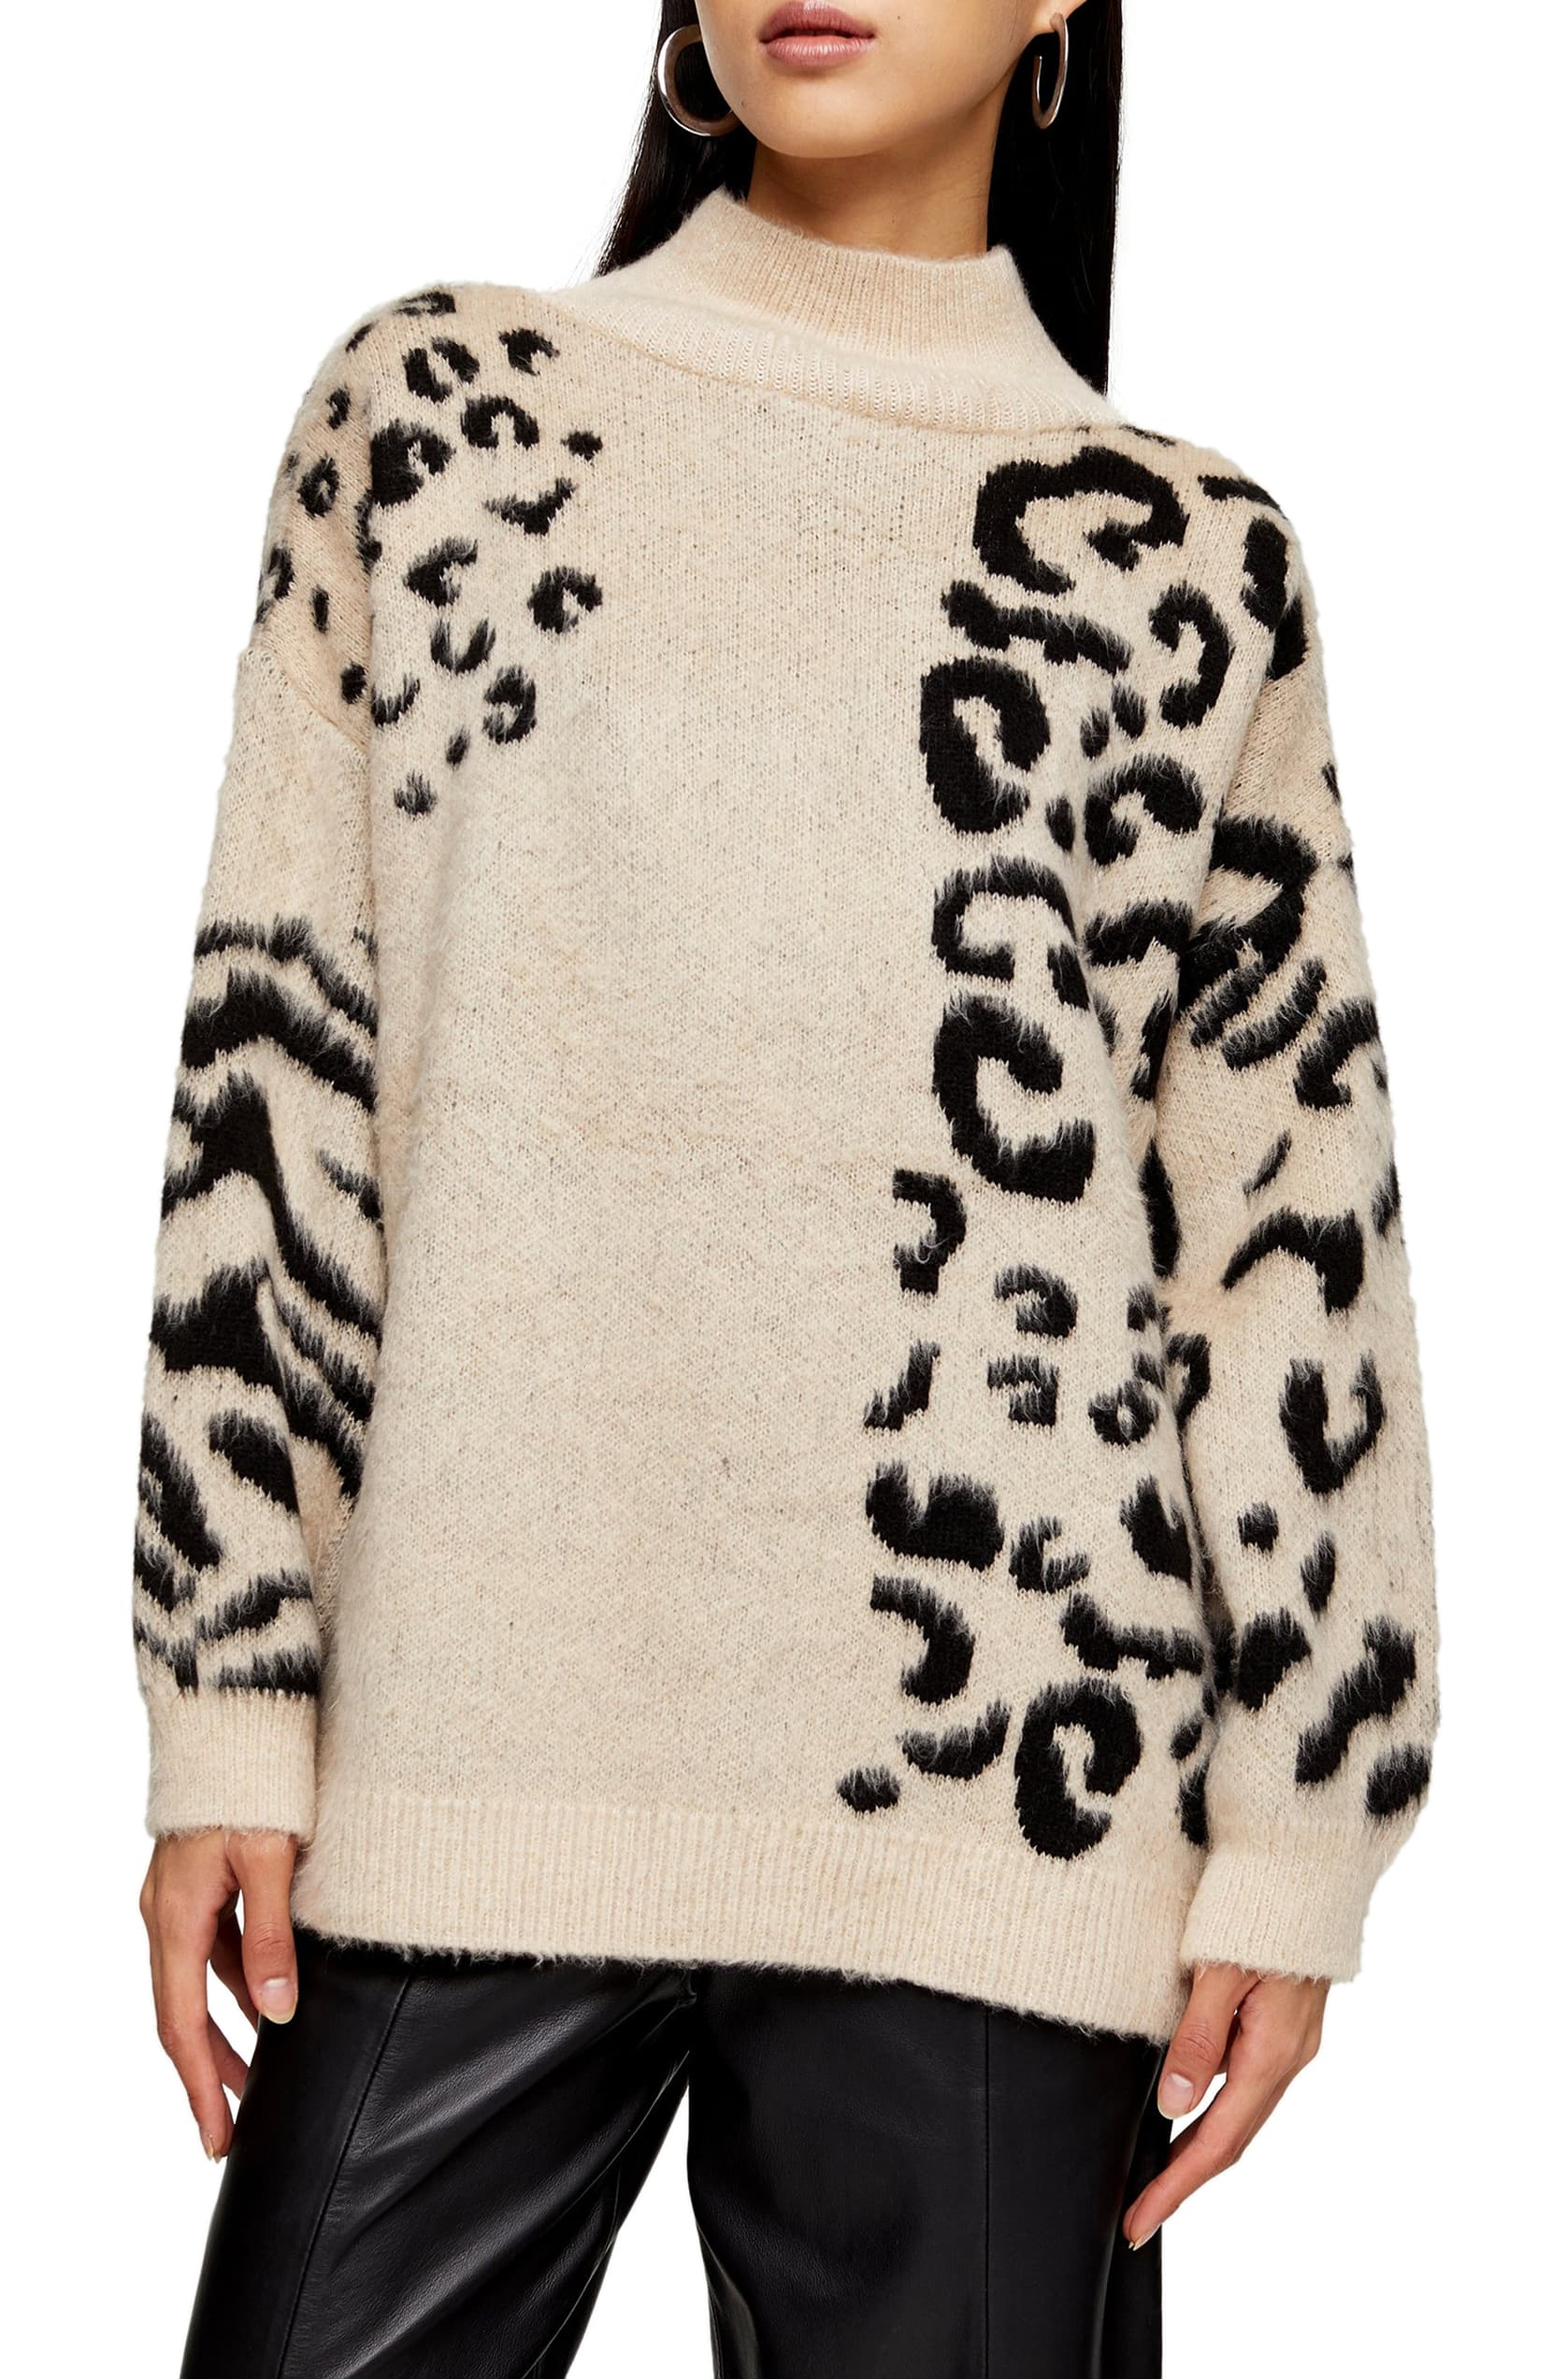 Fulfill all your cozy style needs with this mock-neck sweater covered in an eclectic mix of animal patterns. Shop it{ }- $75. (Image: Nordstrom){ }